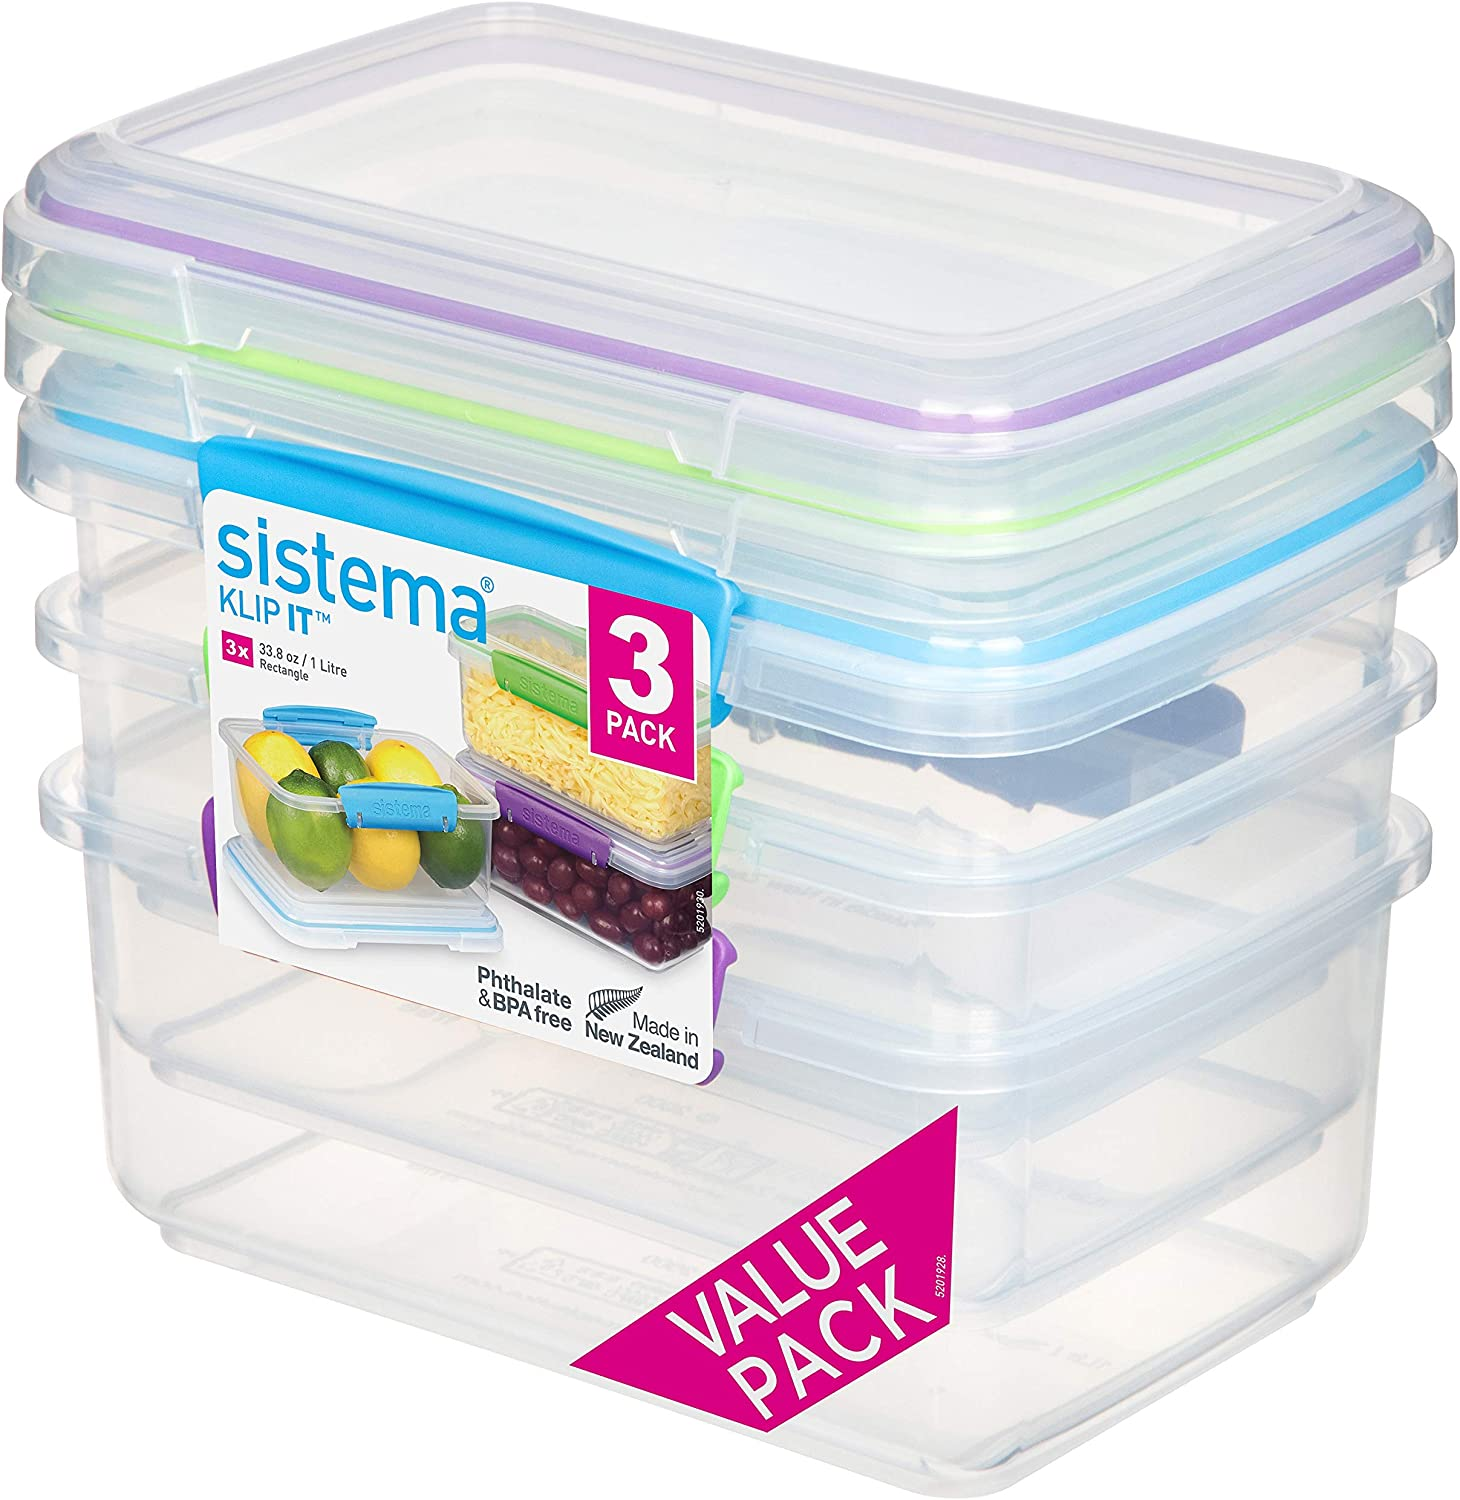 Sistema Food Storage, Polypropylene Assorted, 1L x 3